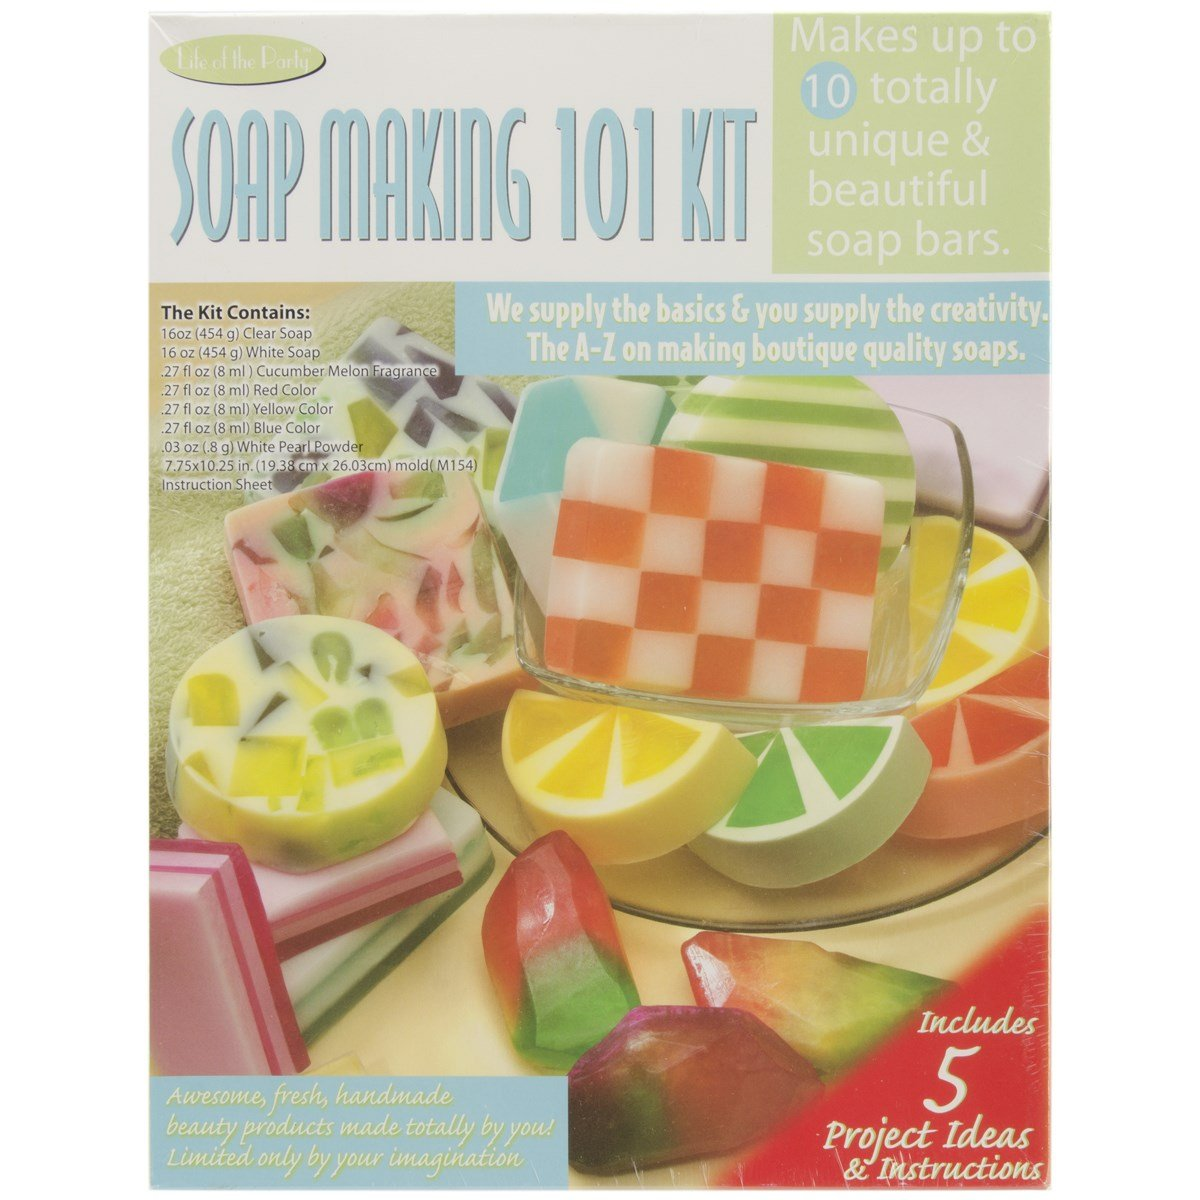 Life of the Party Soap Making 101 Kit, 57027 by Life of the Party (Image #1)